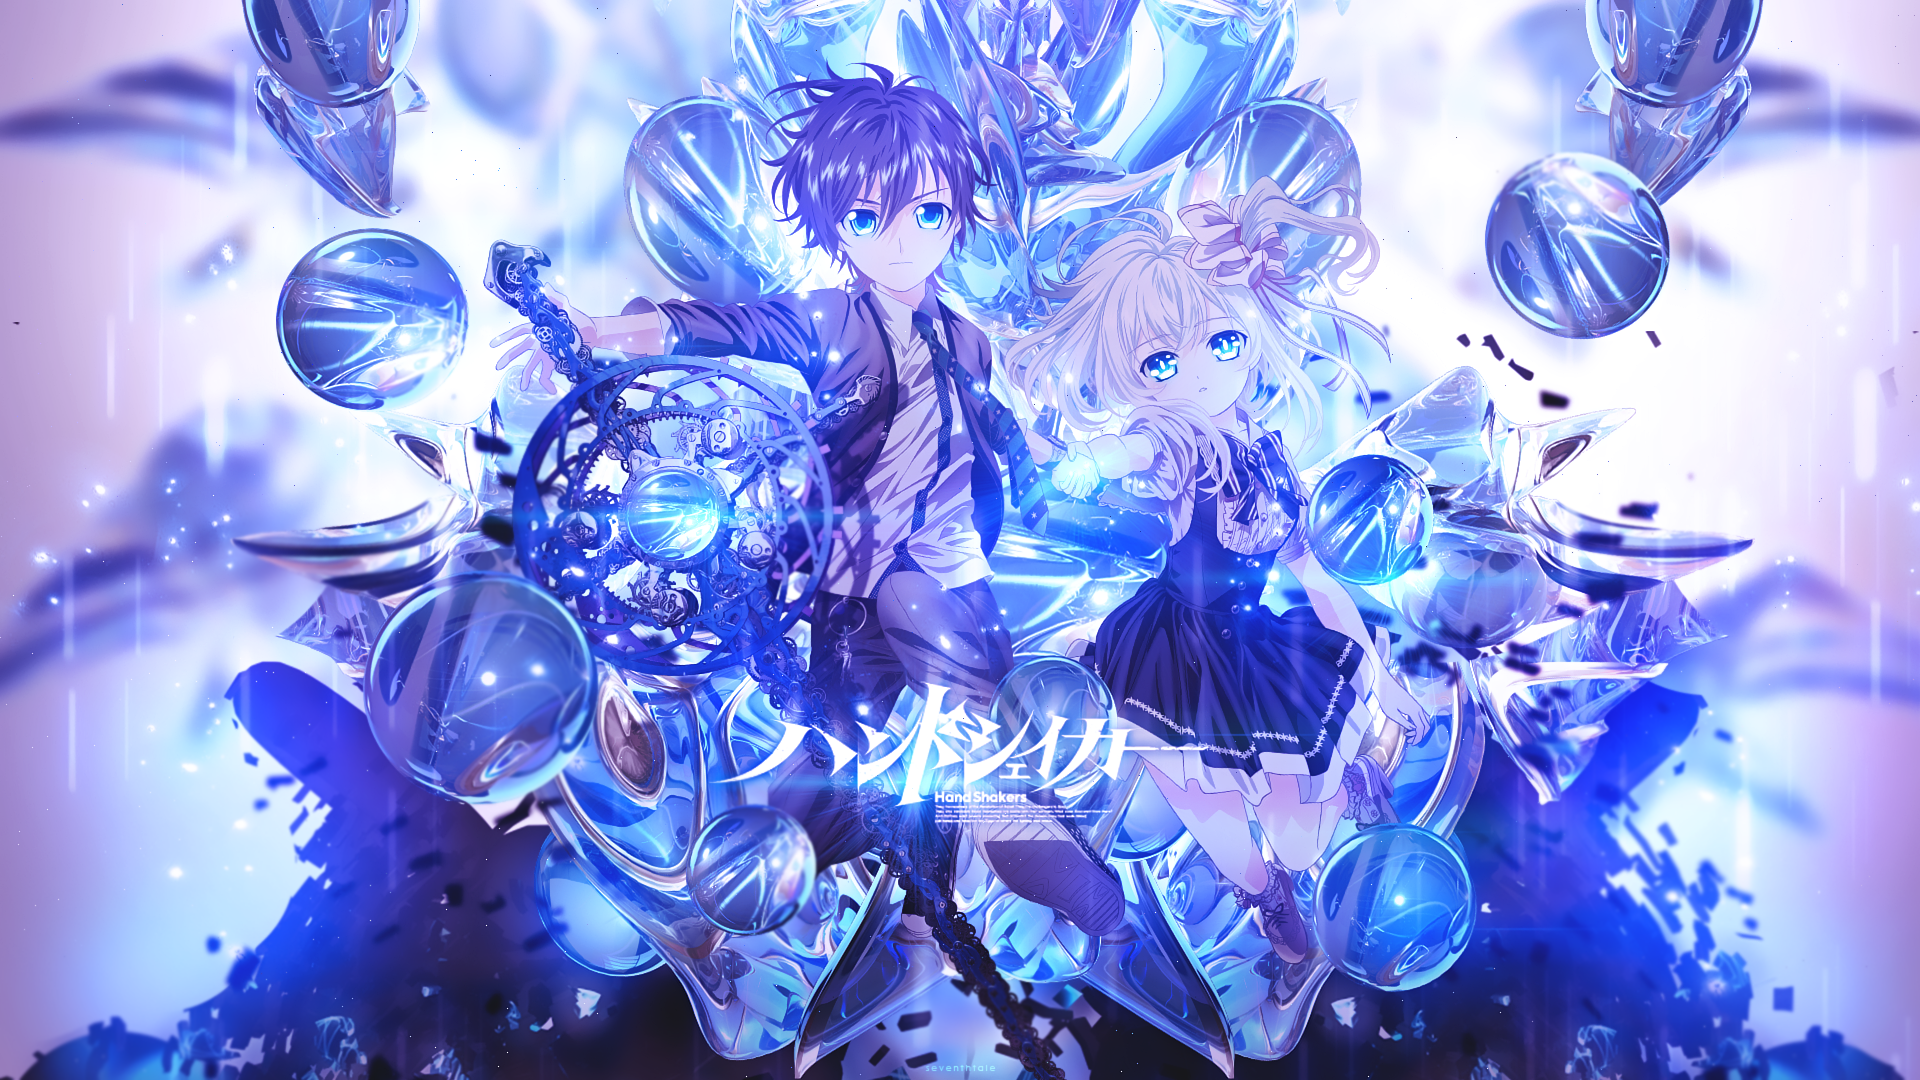 Hand Shakers Backgrounds, Compatible - PC, Mobile, Gadgets| 1920x1080 px